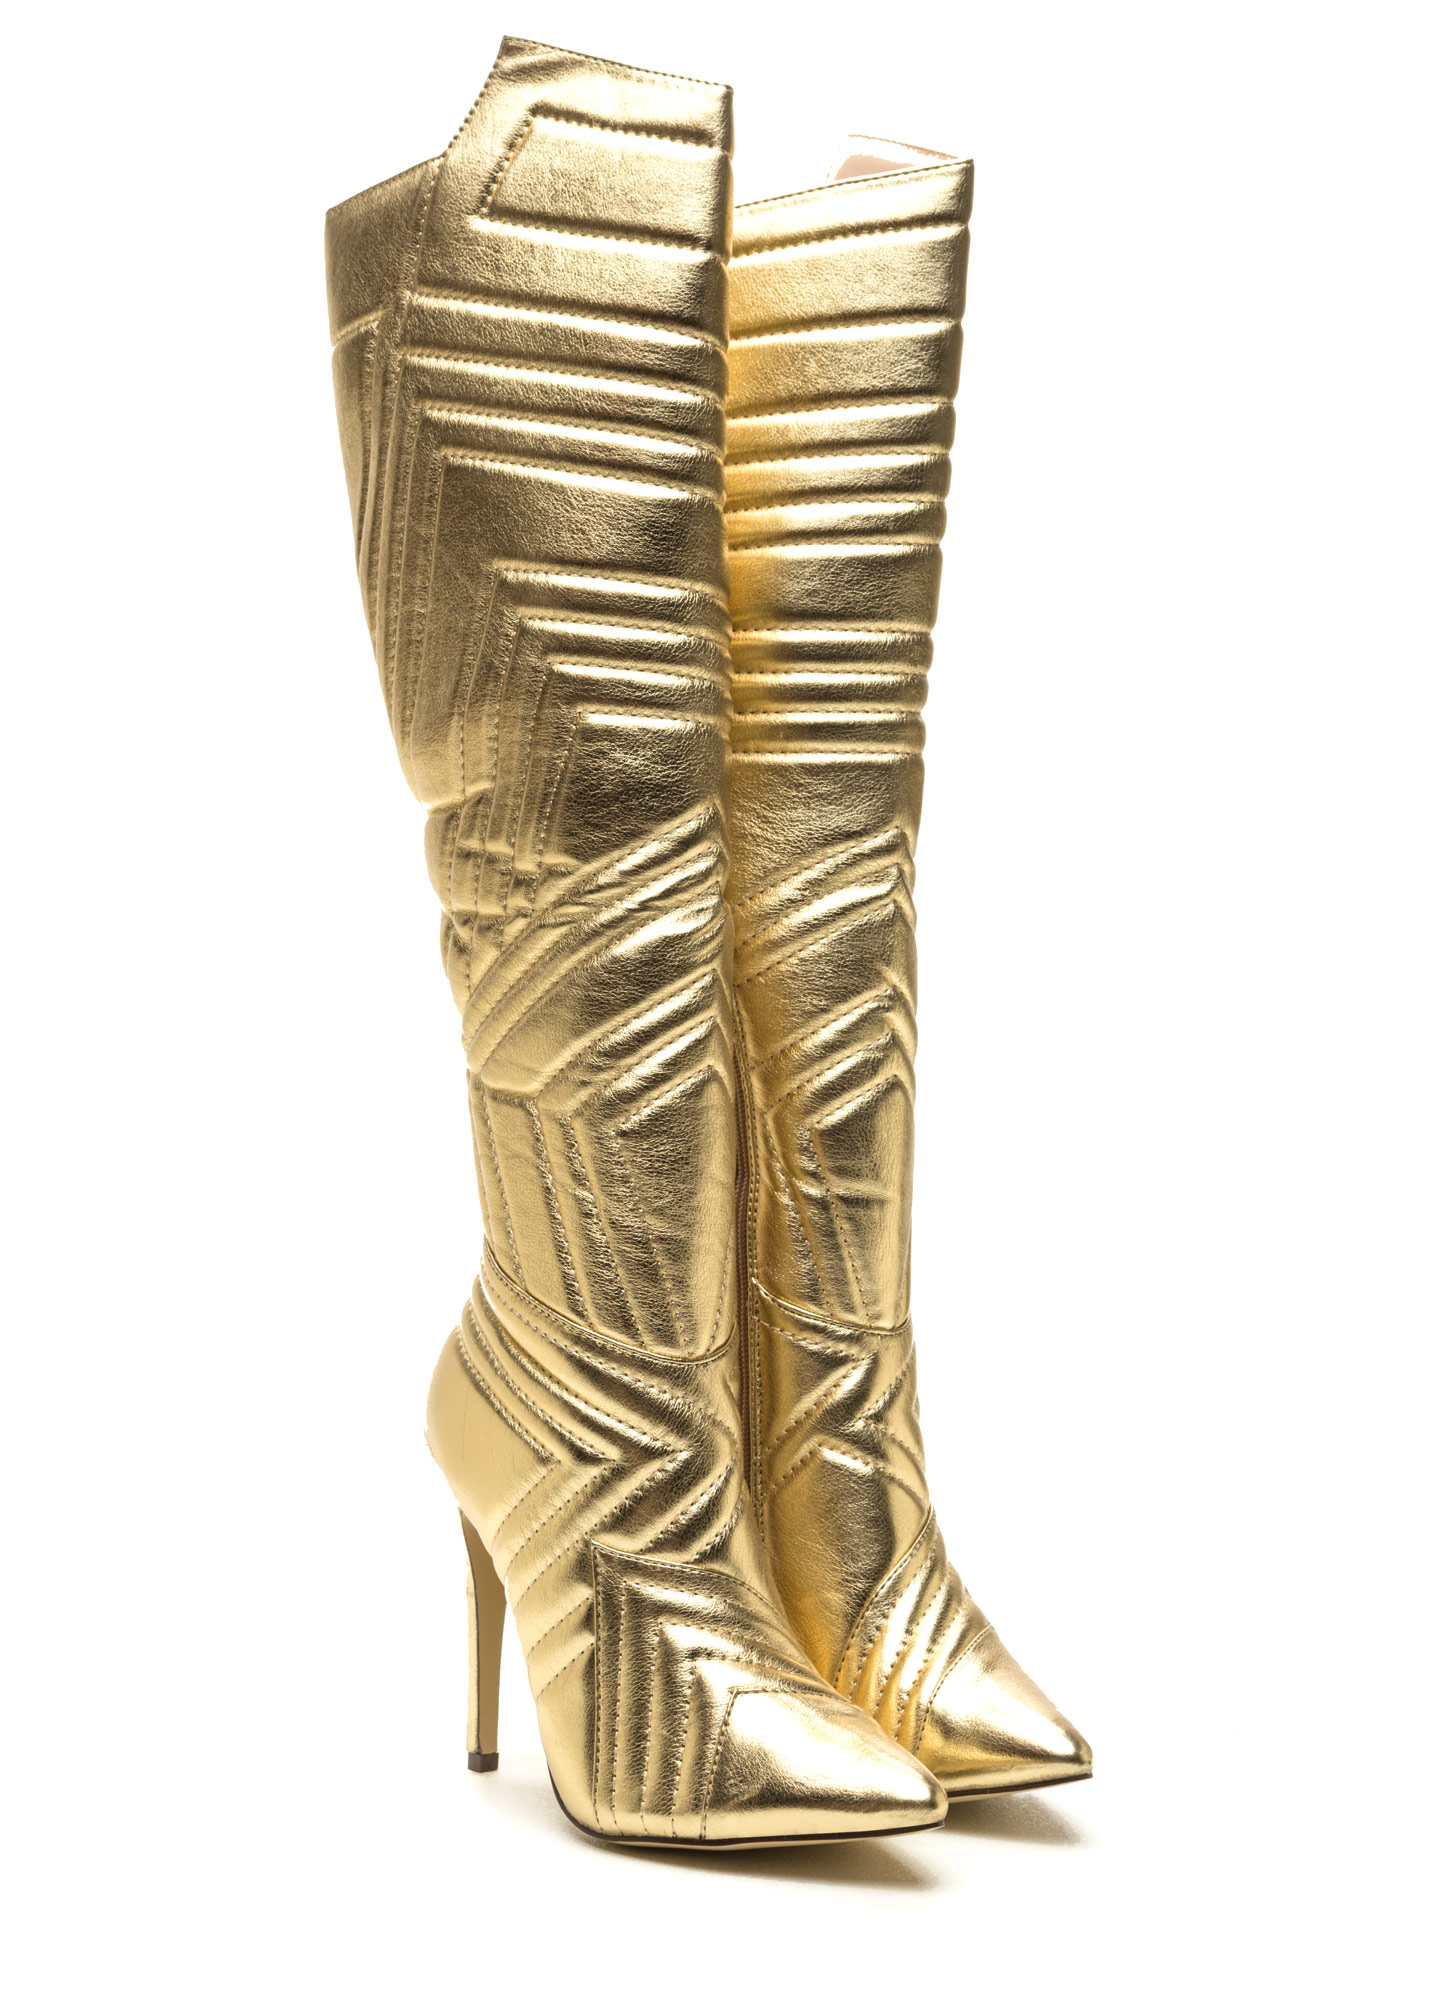 Quilted Wonder Metallic Boots GOLD (Final Sale)